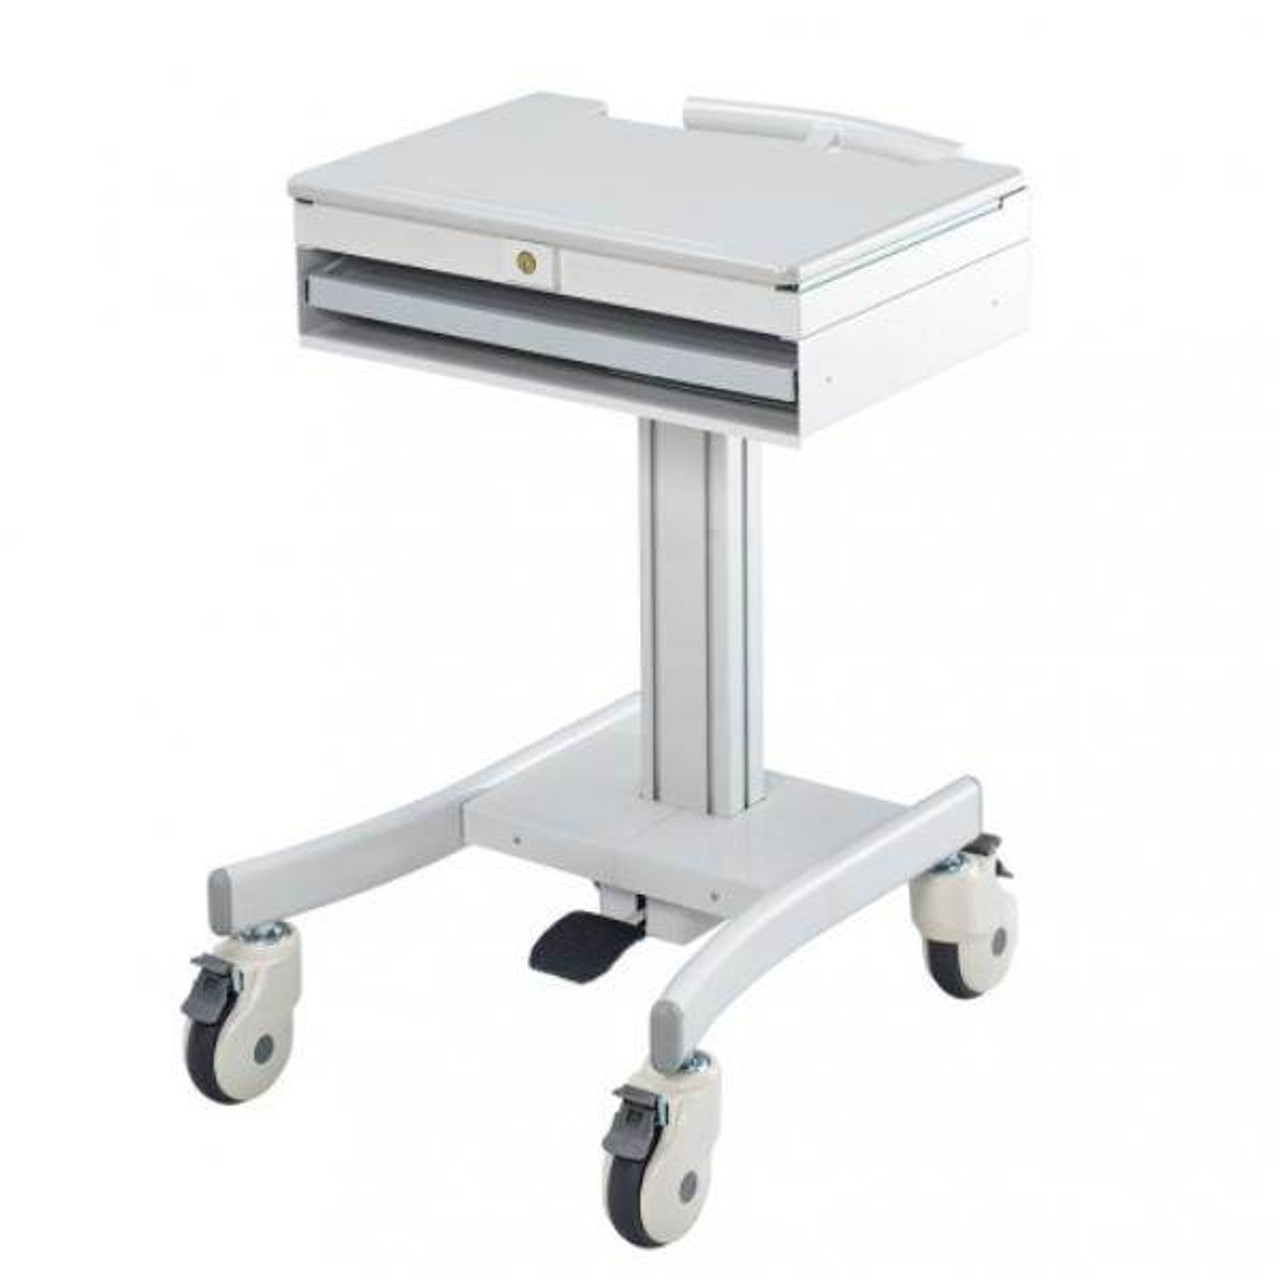 Image for Atdec A-NC Telehook Notebook Cart CX Computer Superstore